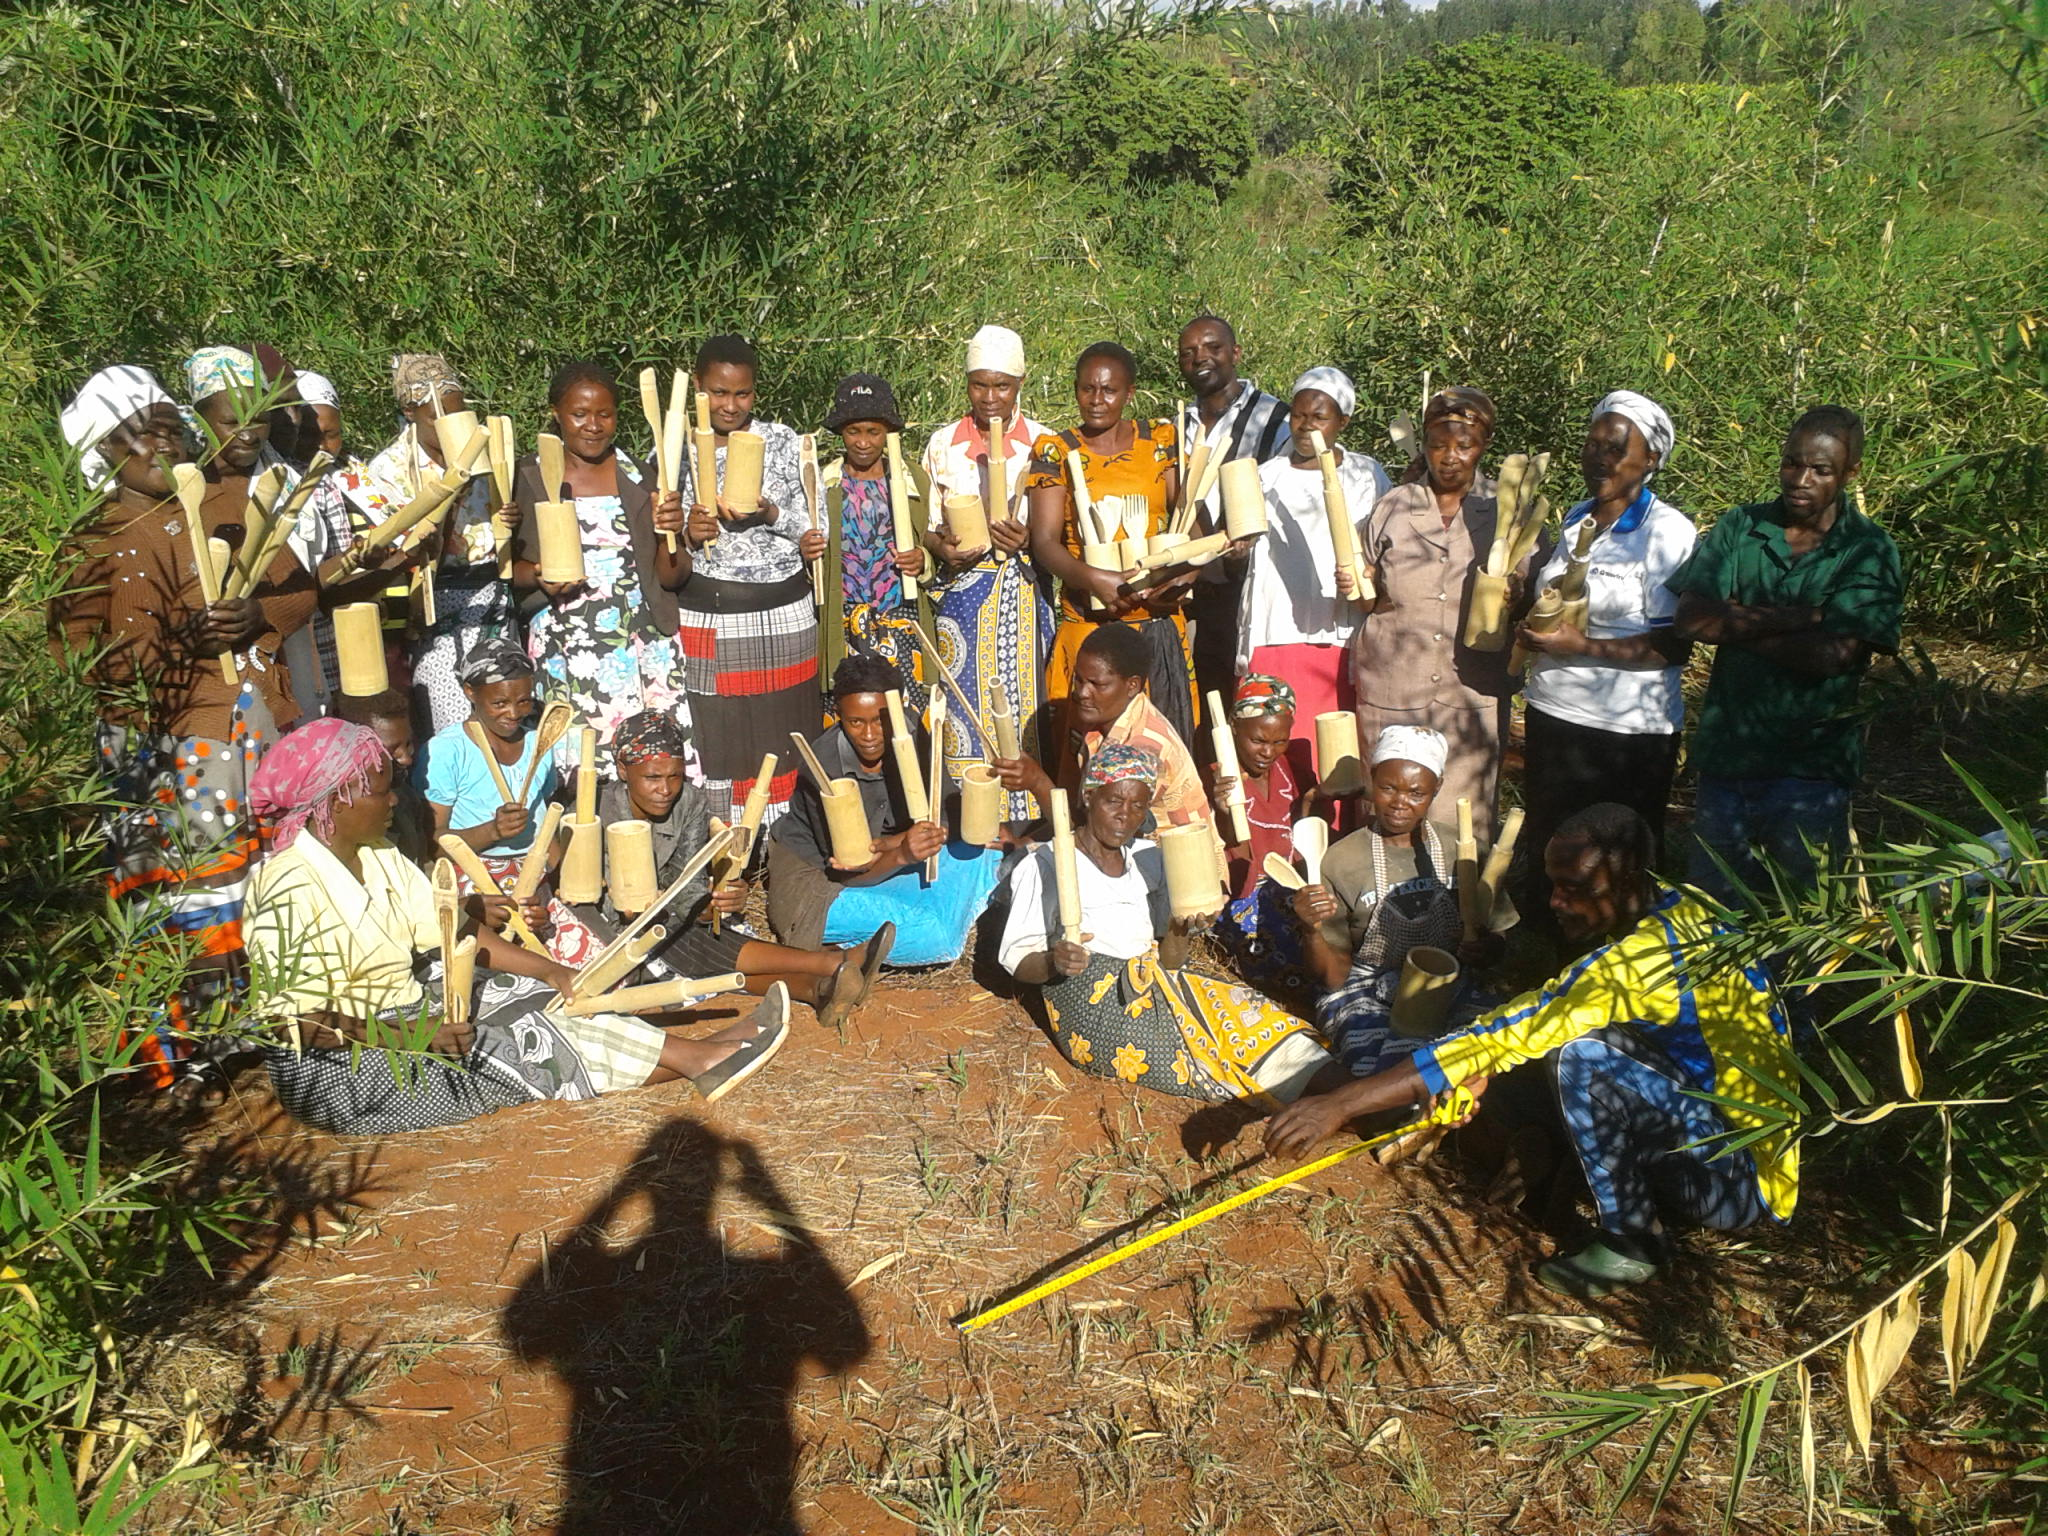 The women display some of the bamboo products they were trained to make